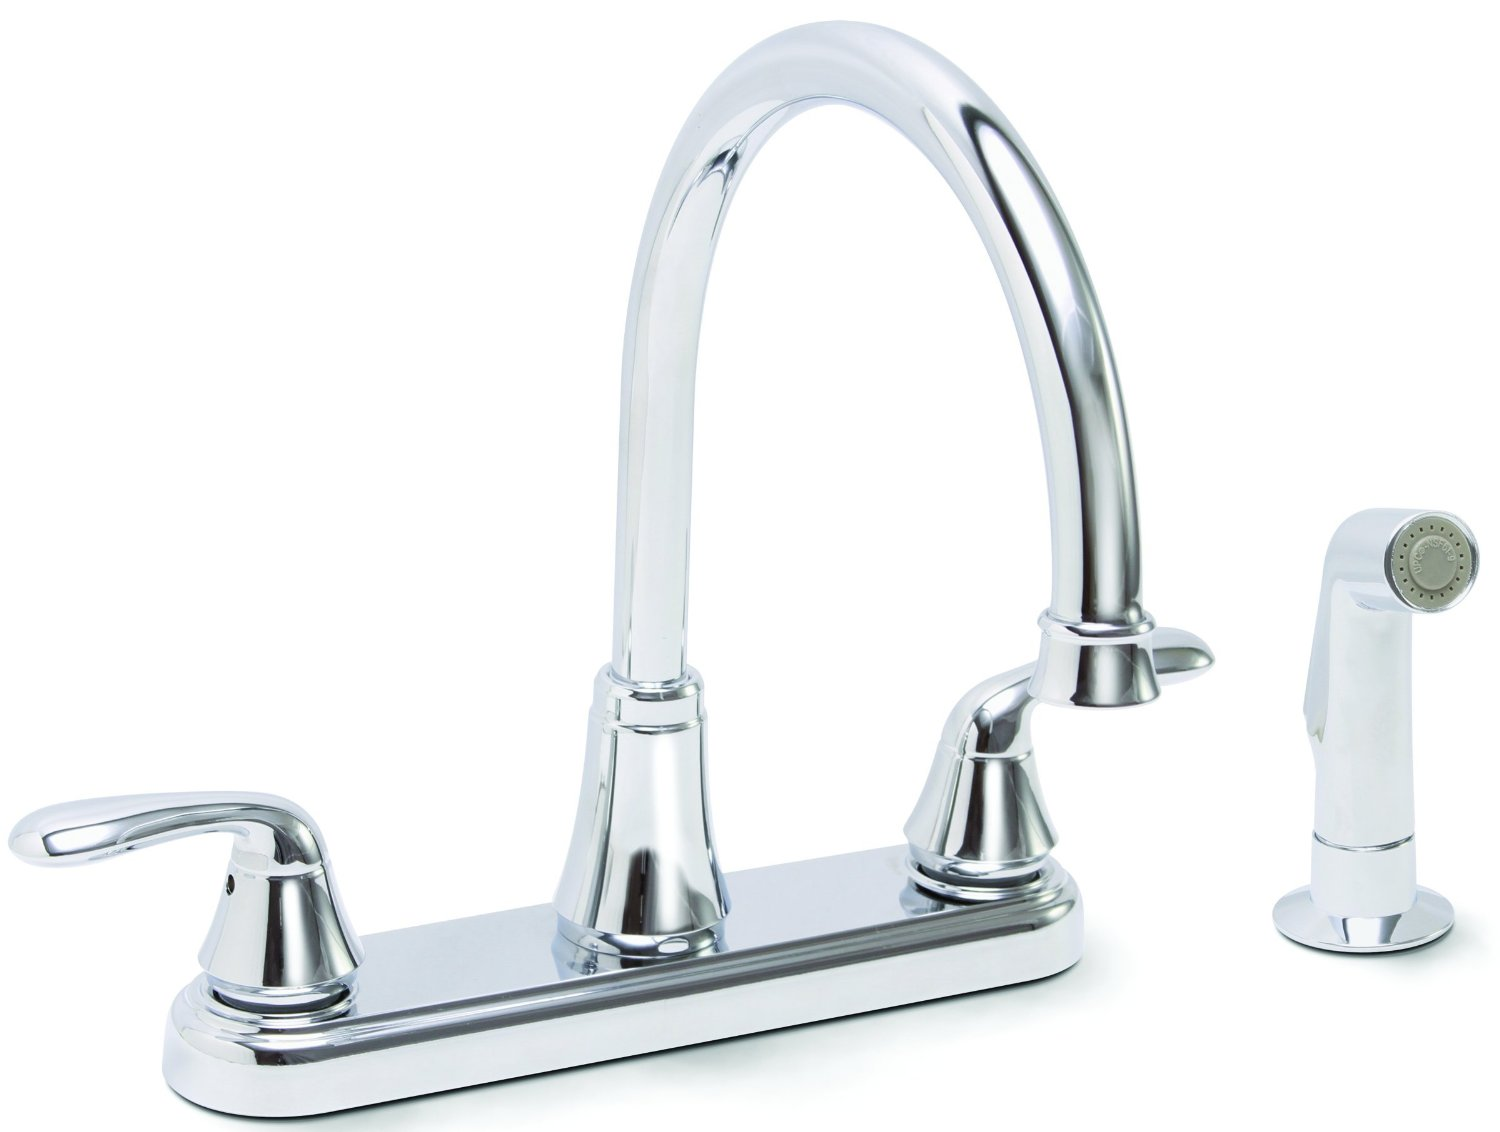 waterstone kitchen maidanchronicles faucet cute at suite hole com annapolis